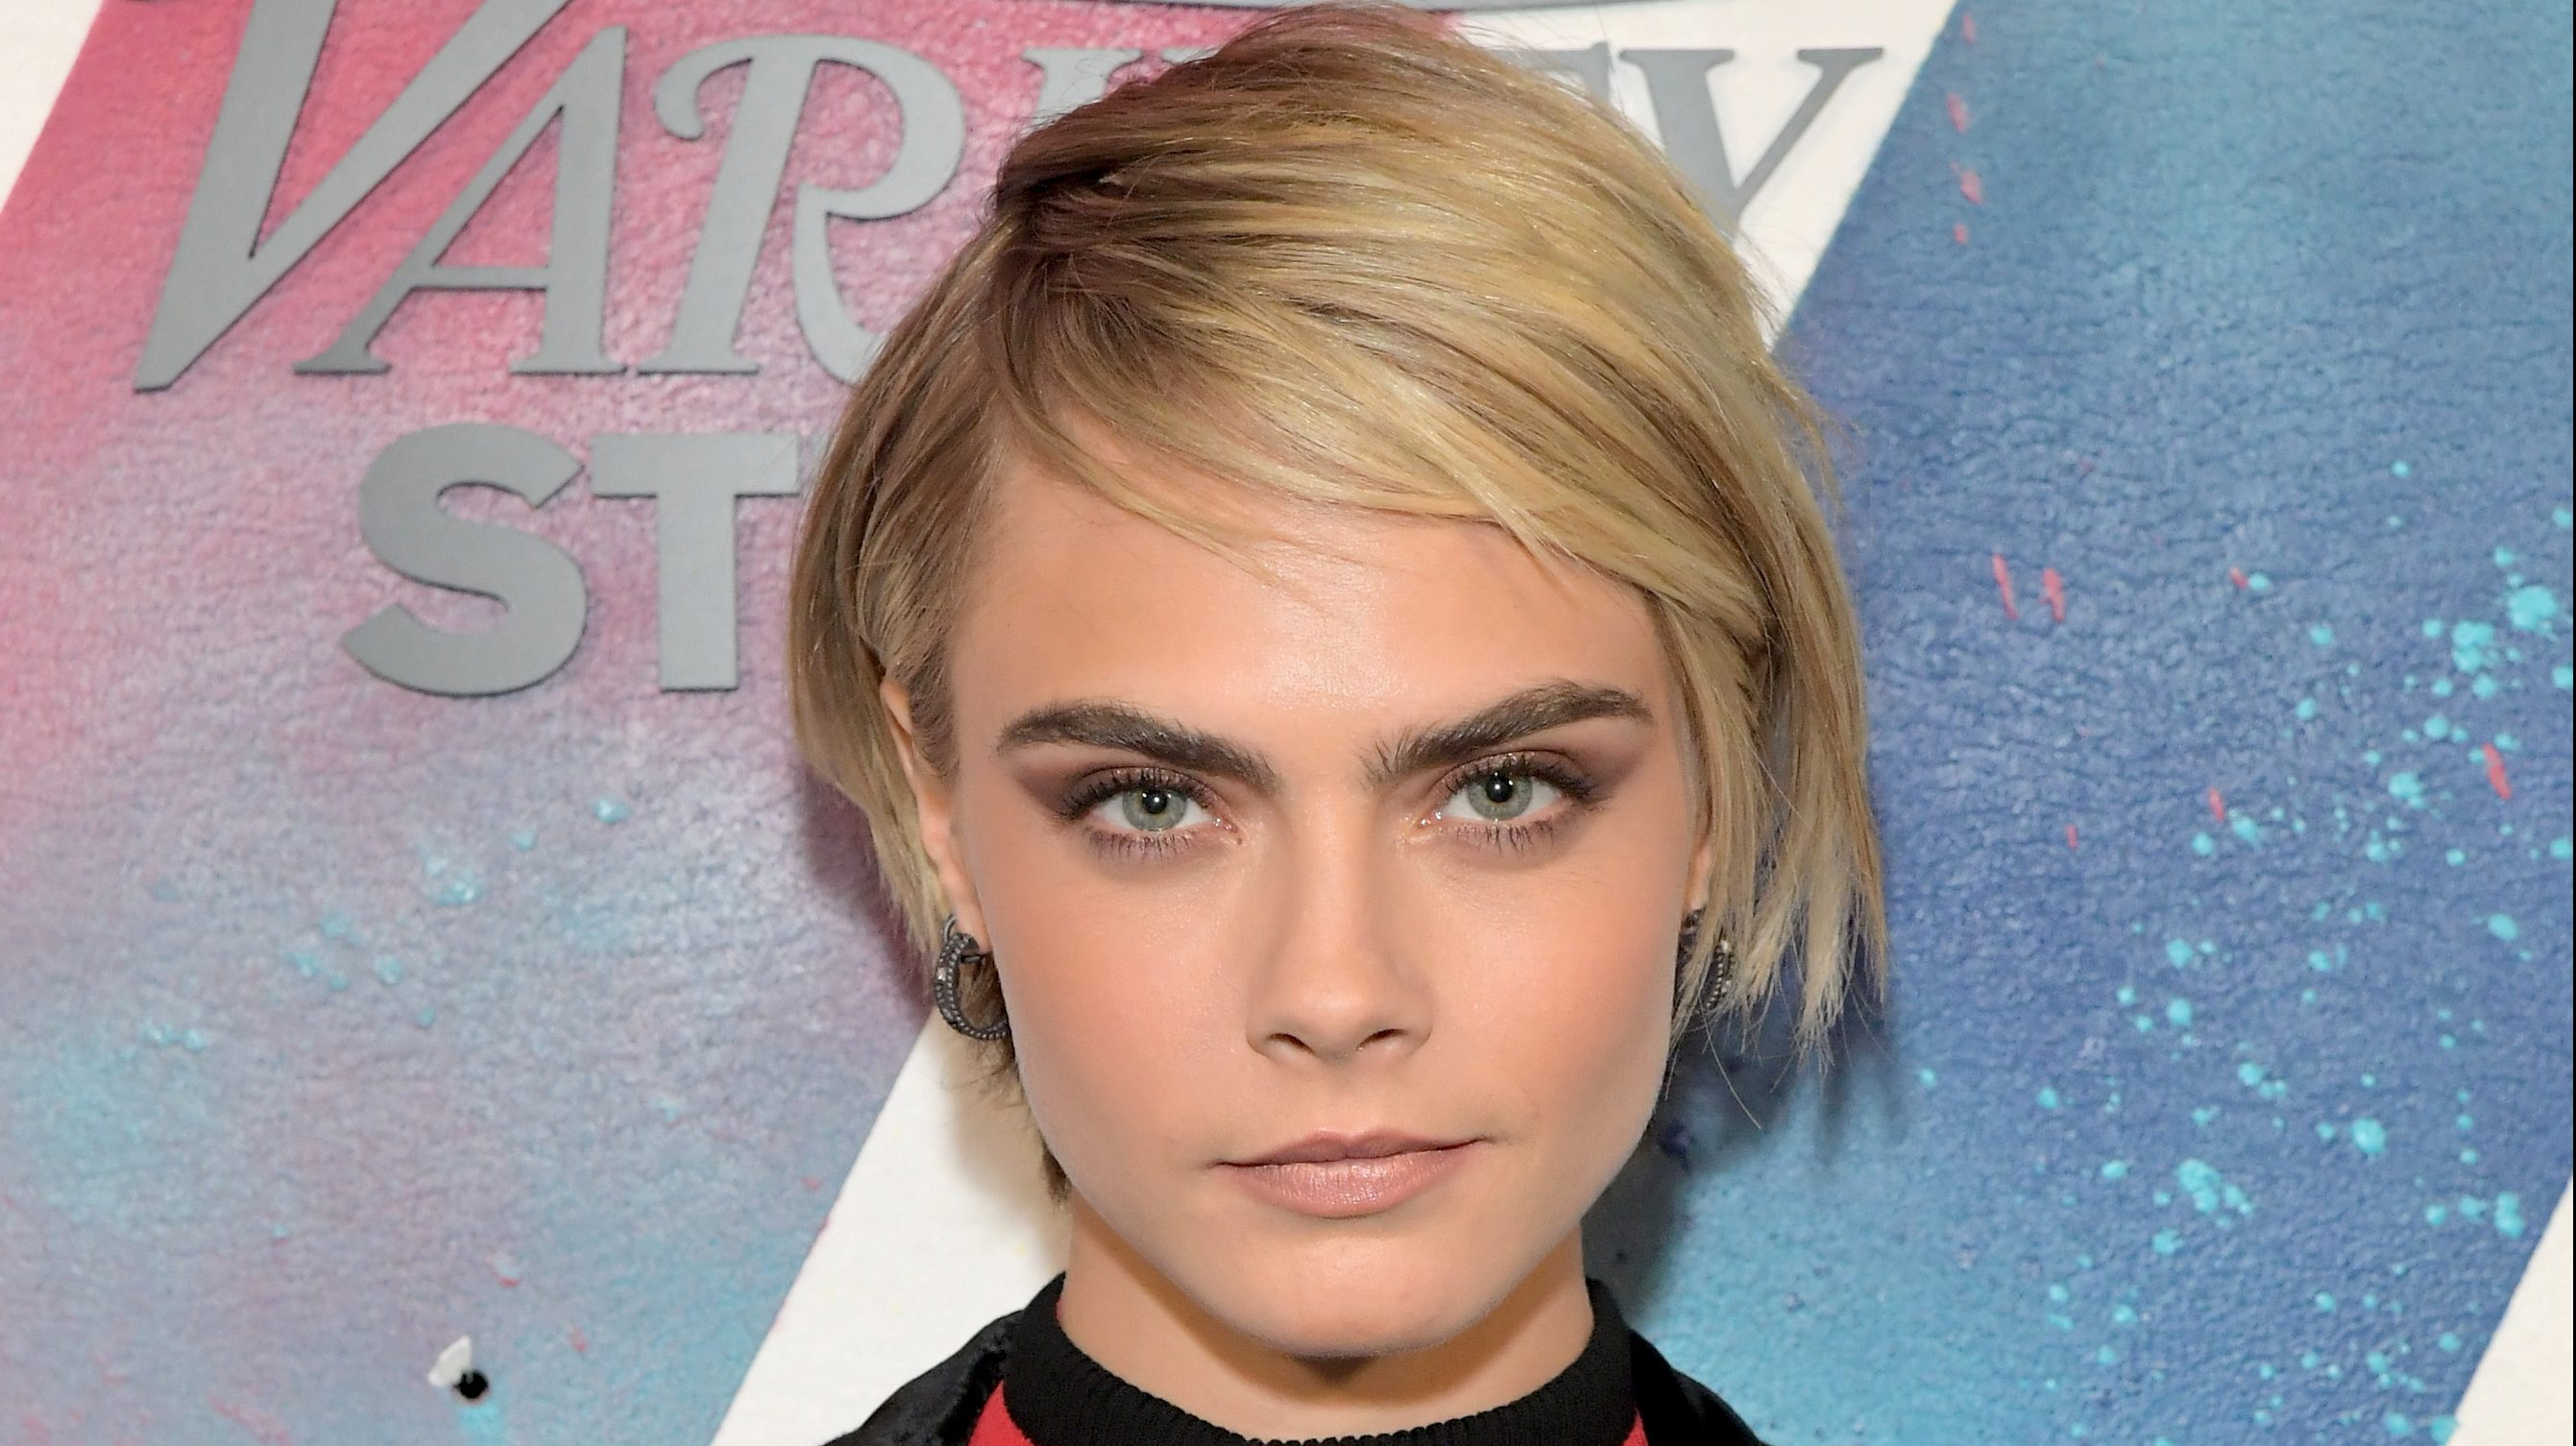 WATCH: Cara Delevingne Gets Naked For Spot-On Gollum